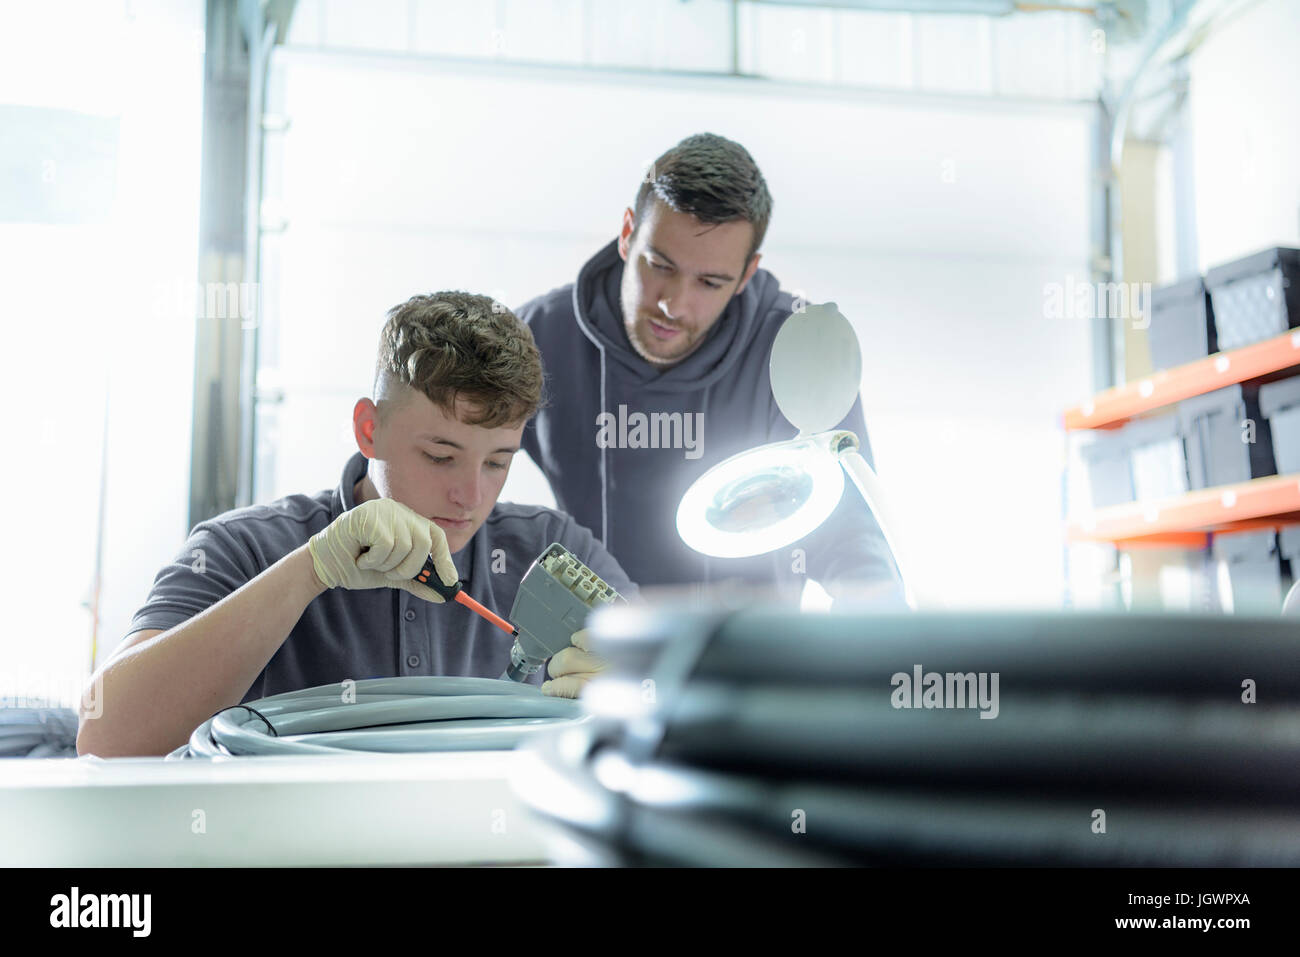 Apprentice and electrical engineer mentor in cable finishing factory - Stock Image